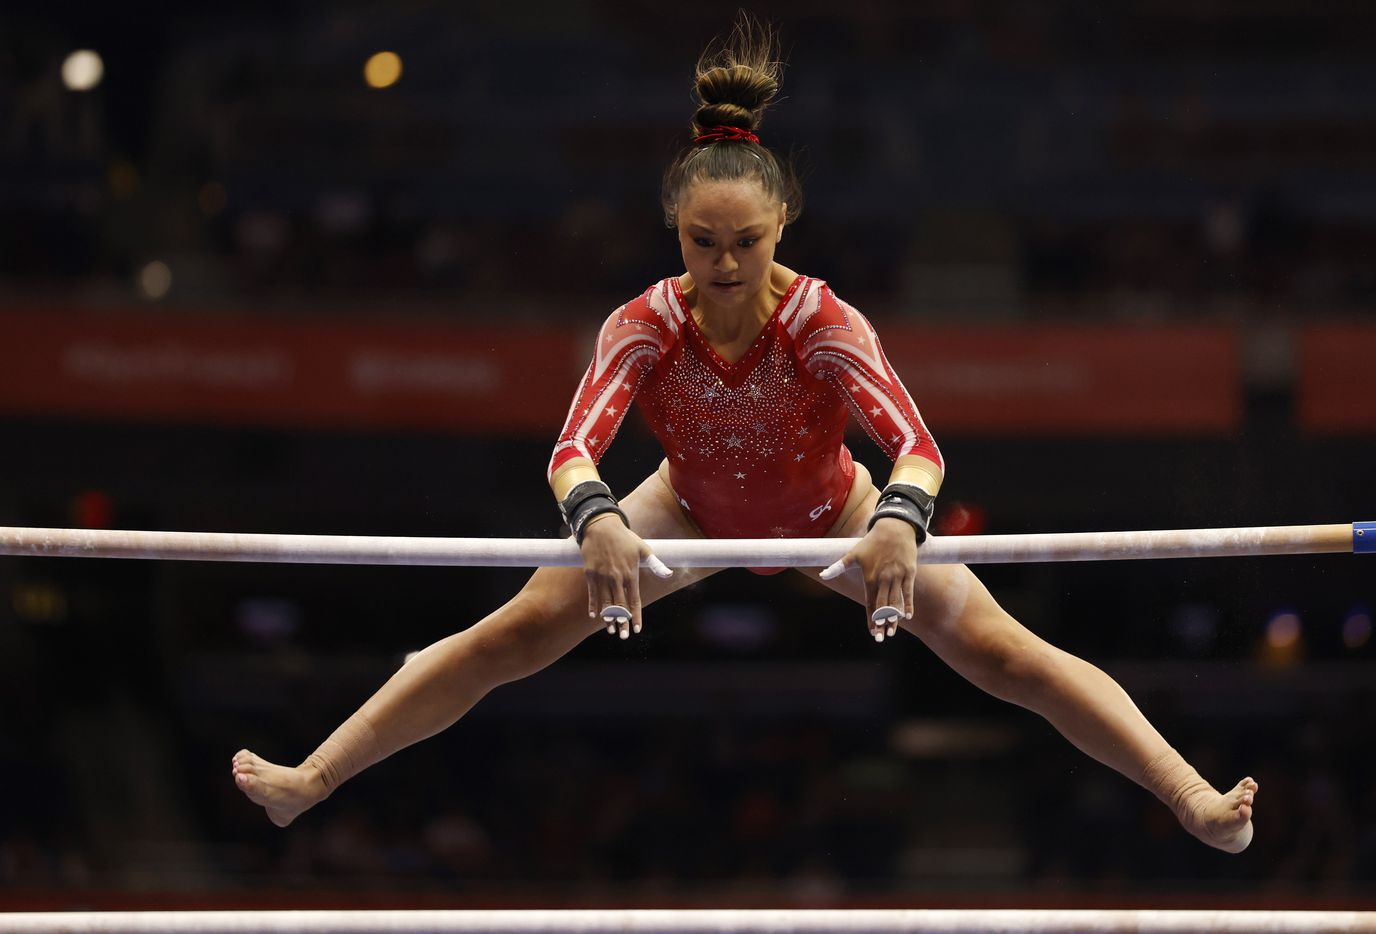 Emma Malabuyo competes on the uneven bars during day 2 of the women's 2021 U.S. Olympic Trials at The Dome at America's Center on Saturday, June 27, 2021 in St Louis, Missouri.(Vernon Bryant/The Dallas Morning News)